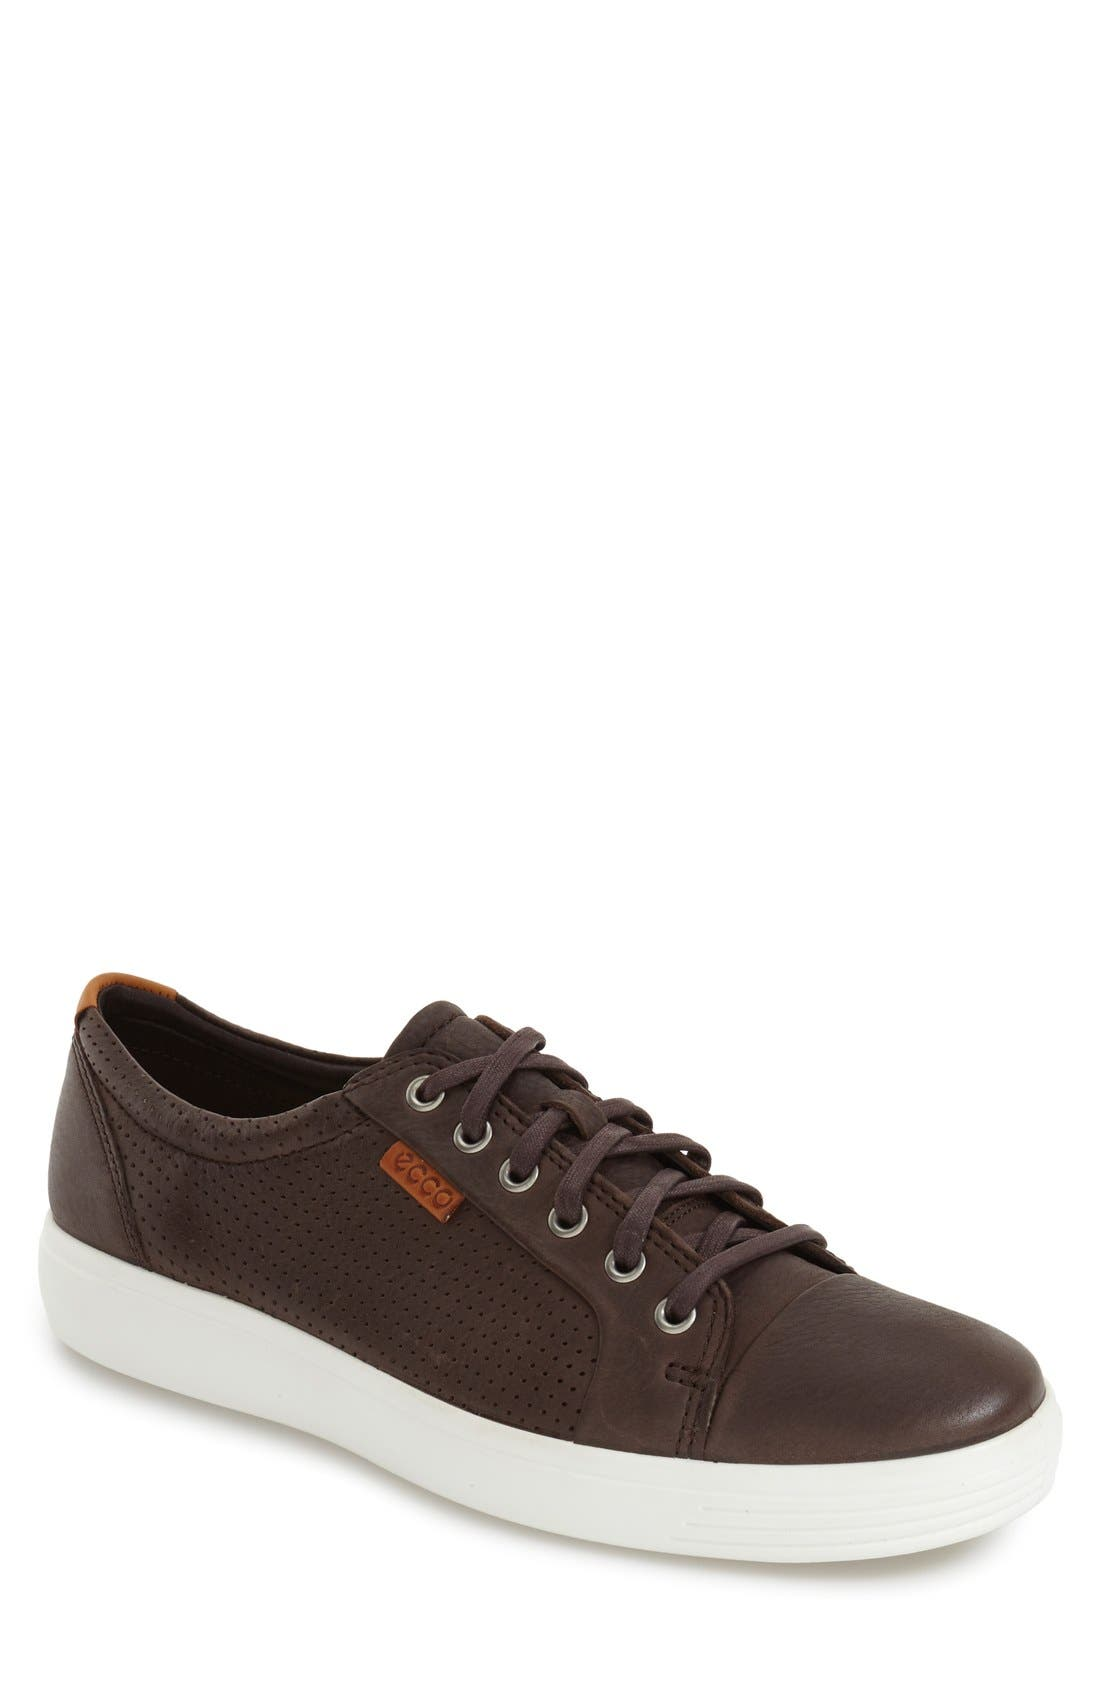 'Soft 7' Sneaker,                             Main thumbnail 1, color,                             Coffee Leather